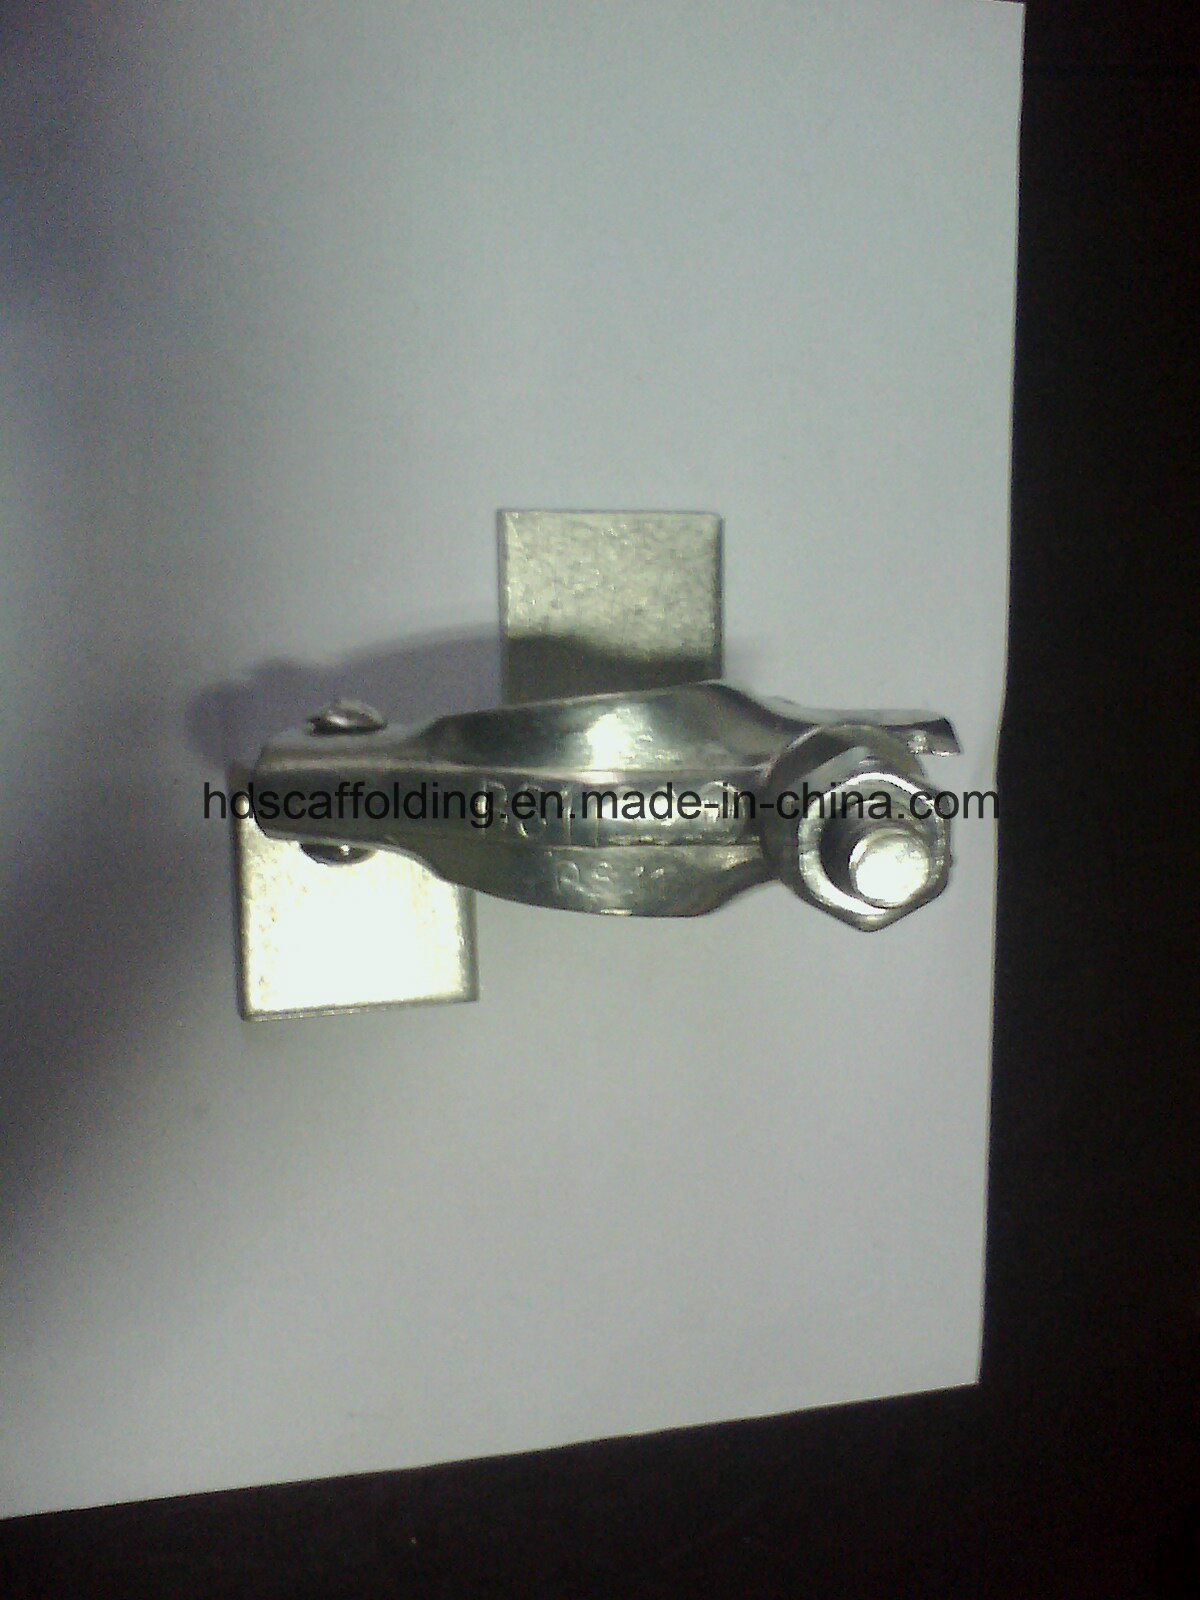 Scaffolding Pressed Board Retaining Coupler